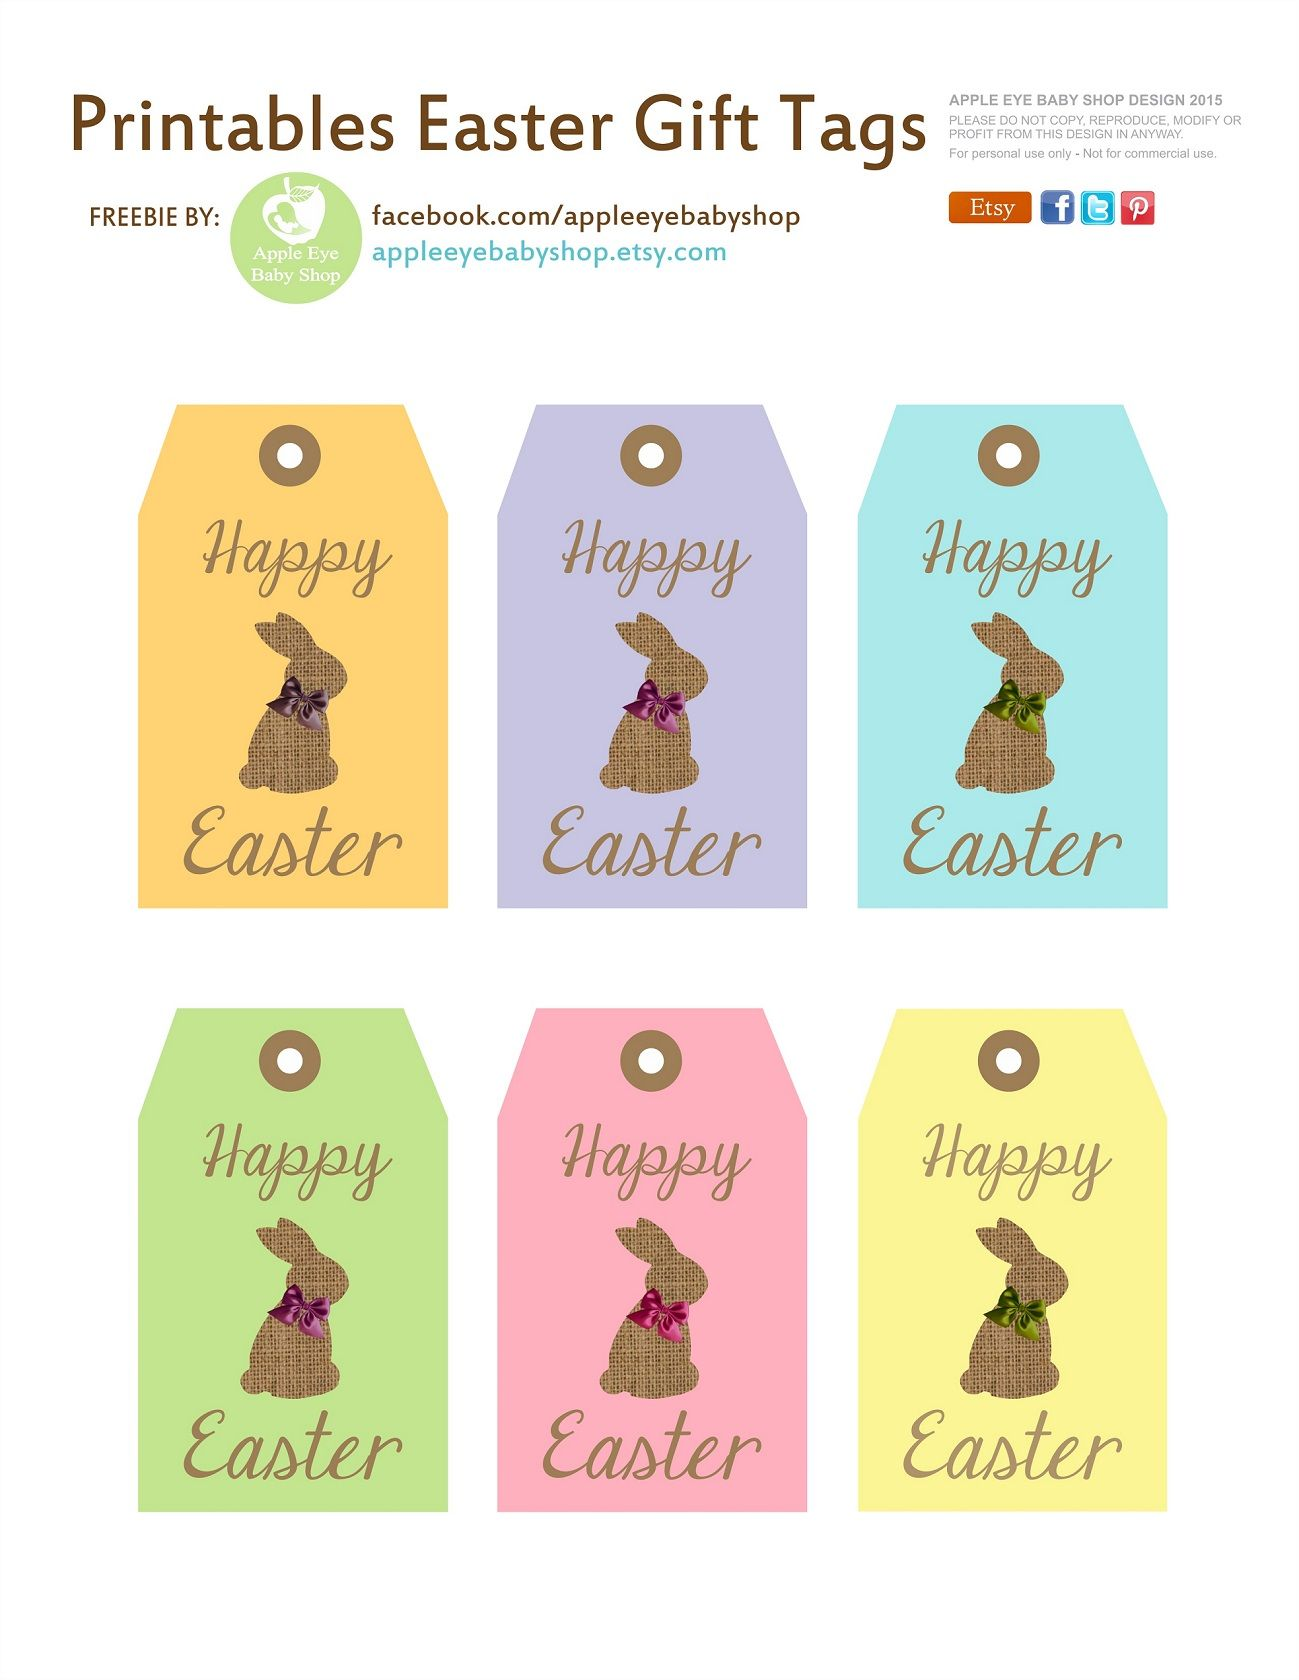 Free printables happy easter bunny gift tags pink blue green free printables happy easter bunny gift tags pink blue green yellow negle Choice Image